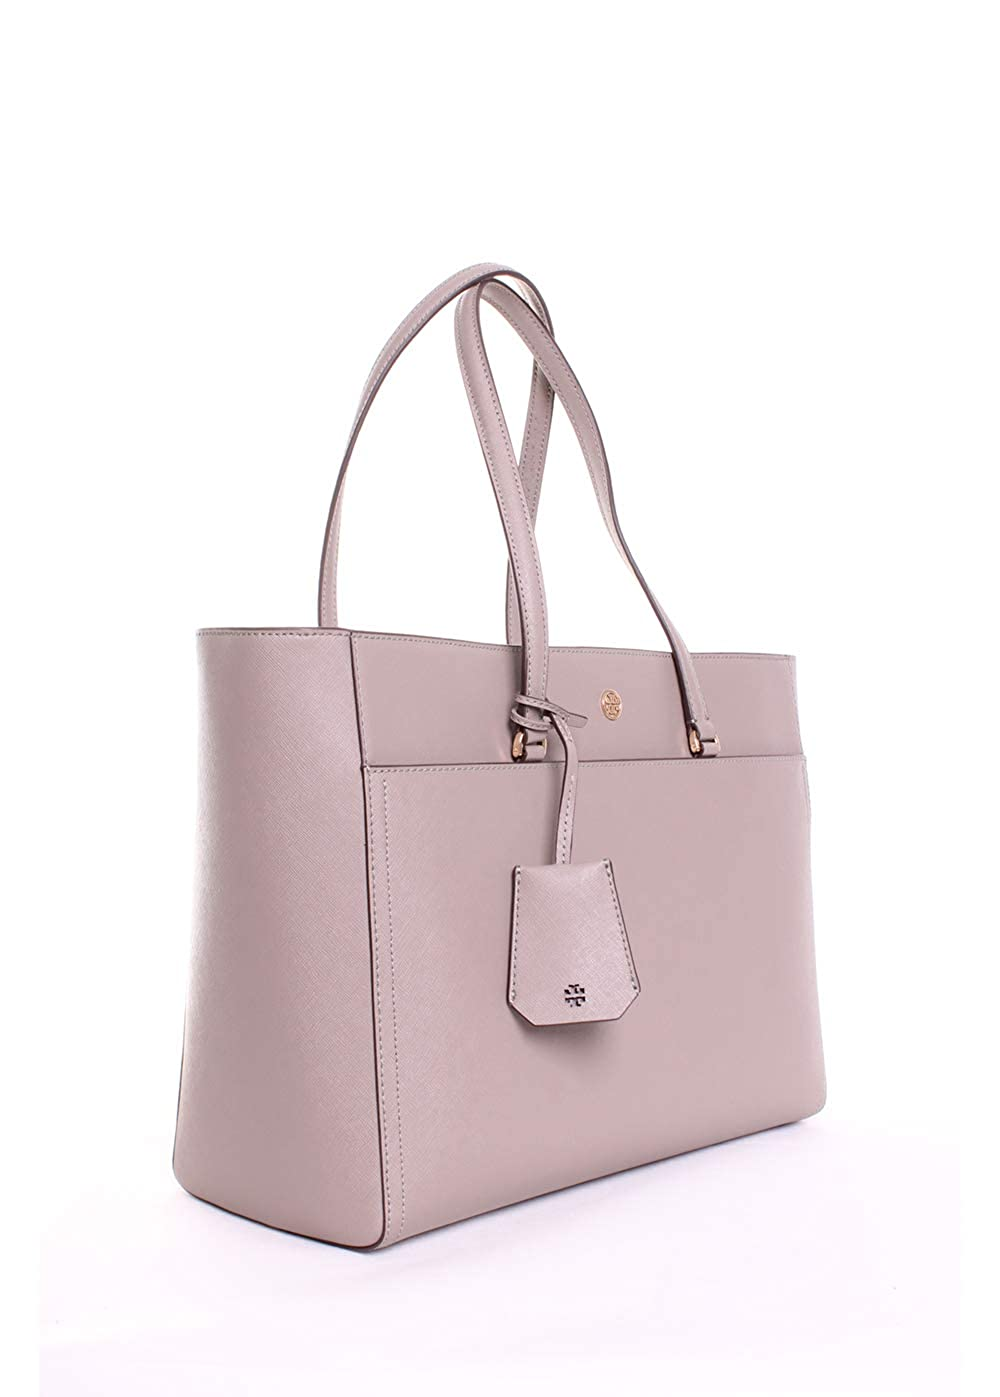 1d2cf4b3030 Amazon.com  Tory Burch Robinson Leather Tote in Gray Heron  Clothing